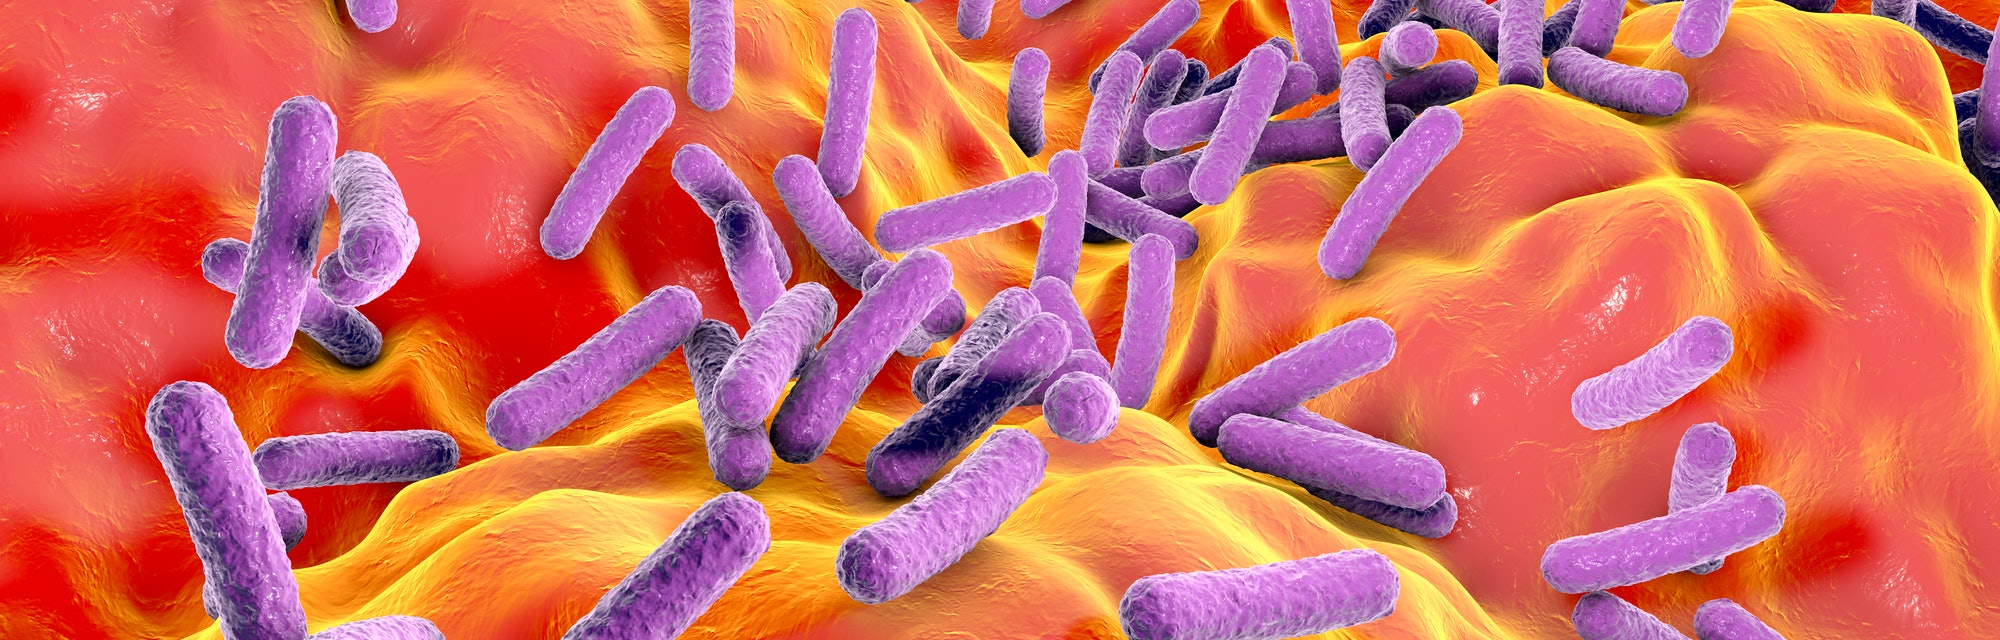 Bacterial species found in the human gut